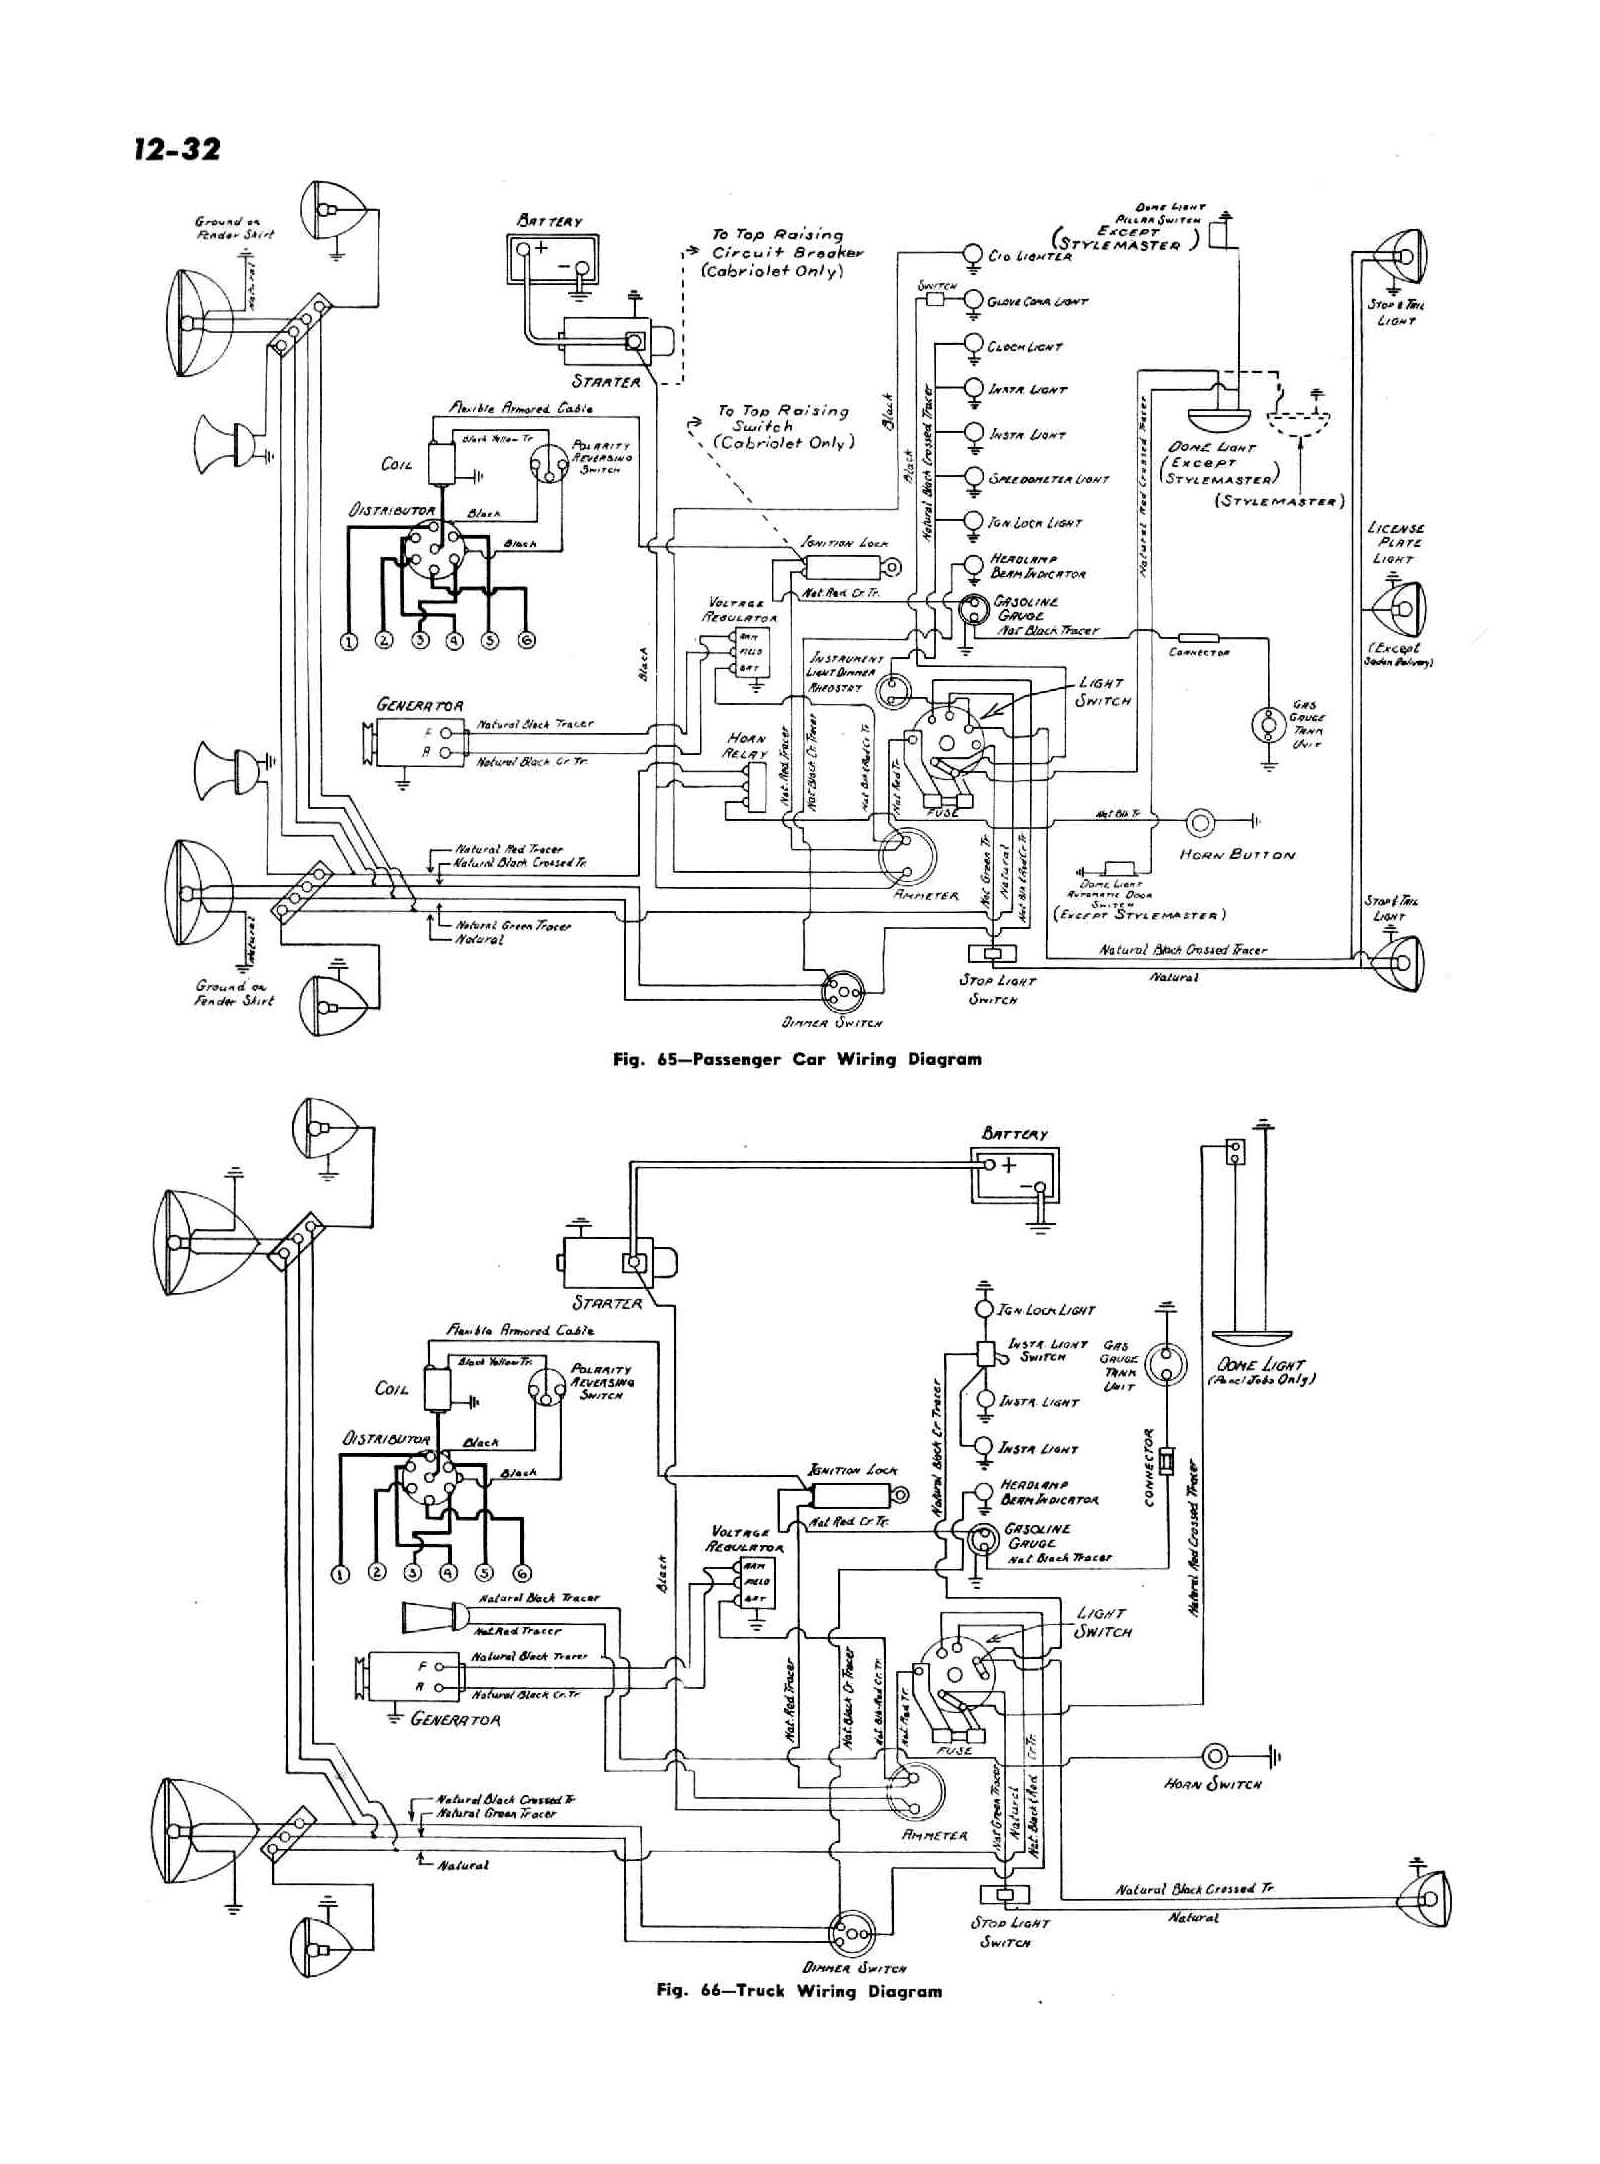 2002 Isuzu Rodeo Engine Diagram Great Design Of Wiring 2001 Axiom Fuse Box Transmission